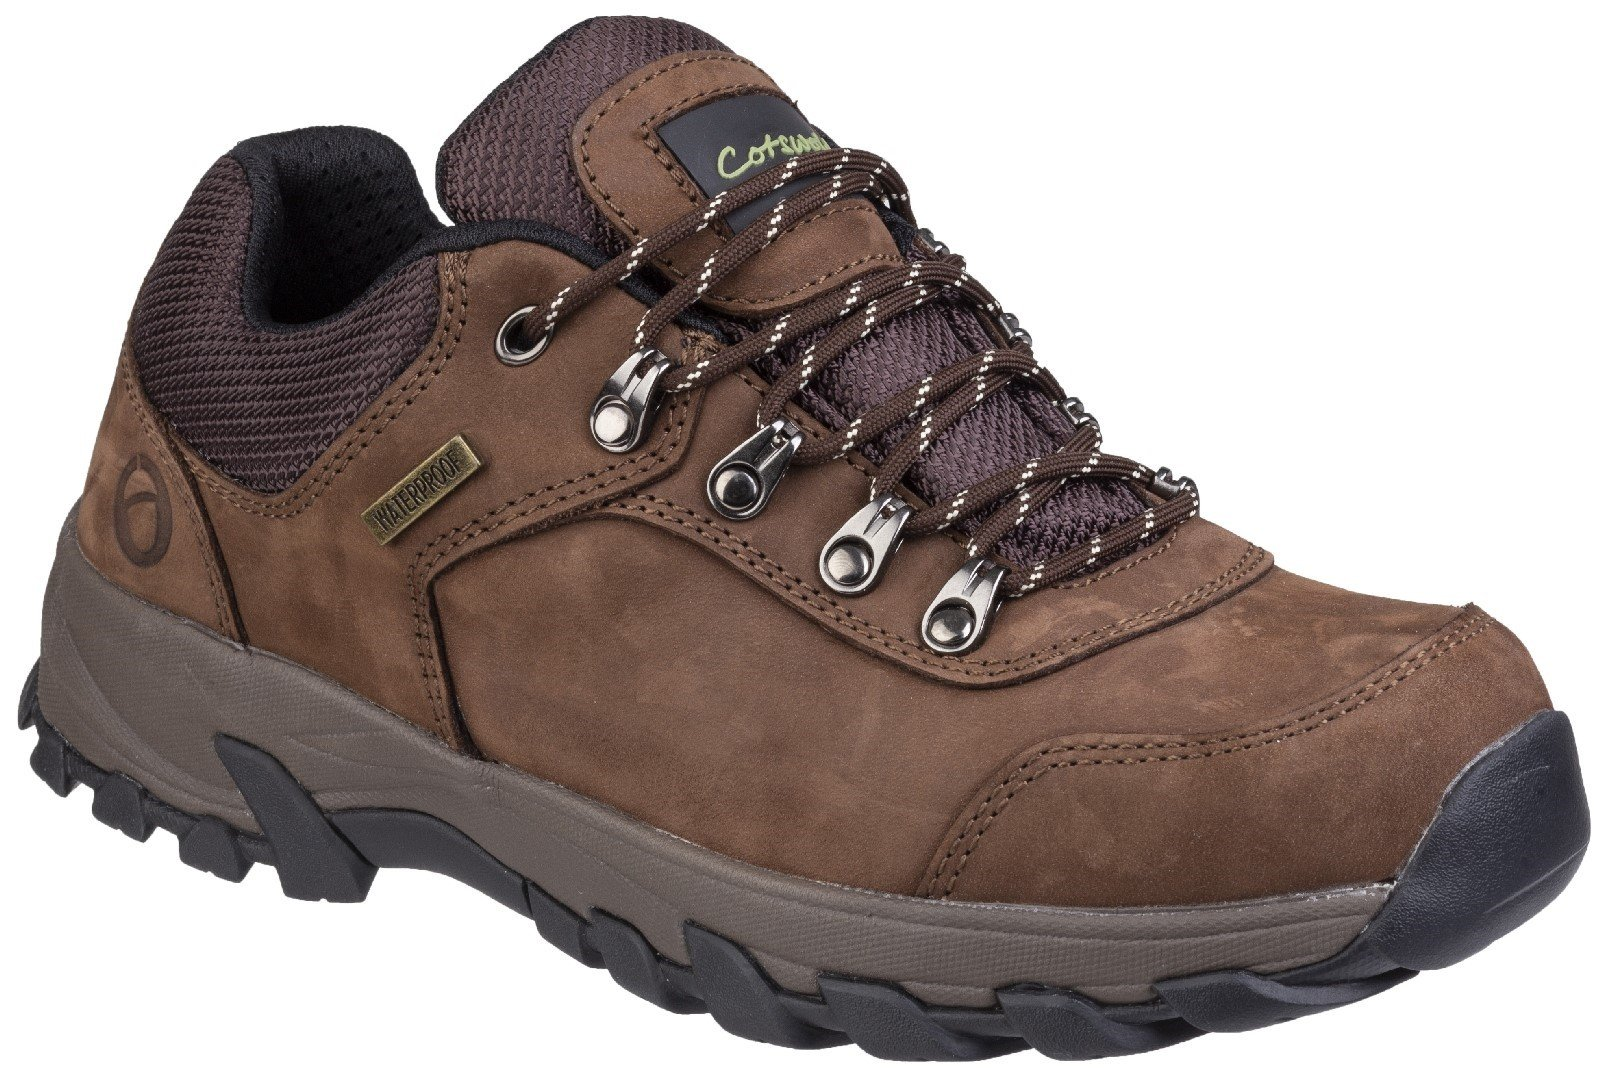 Cotswold Men's Hawling Lace Up Shoe Brown 27139 - Brown 7